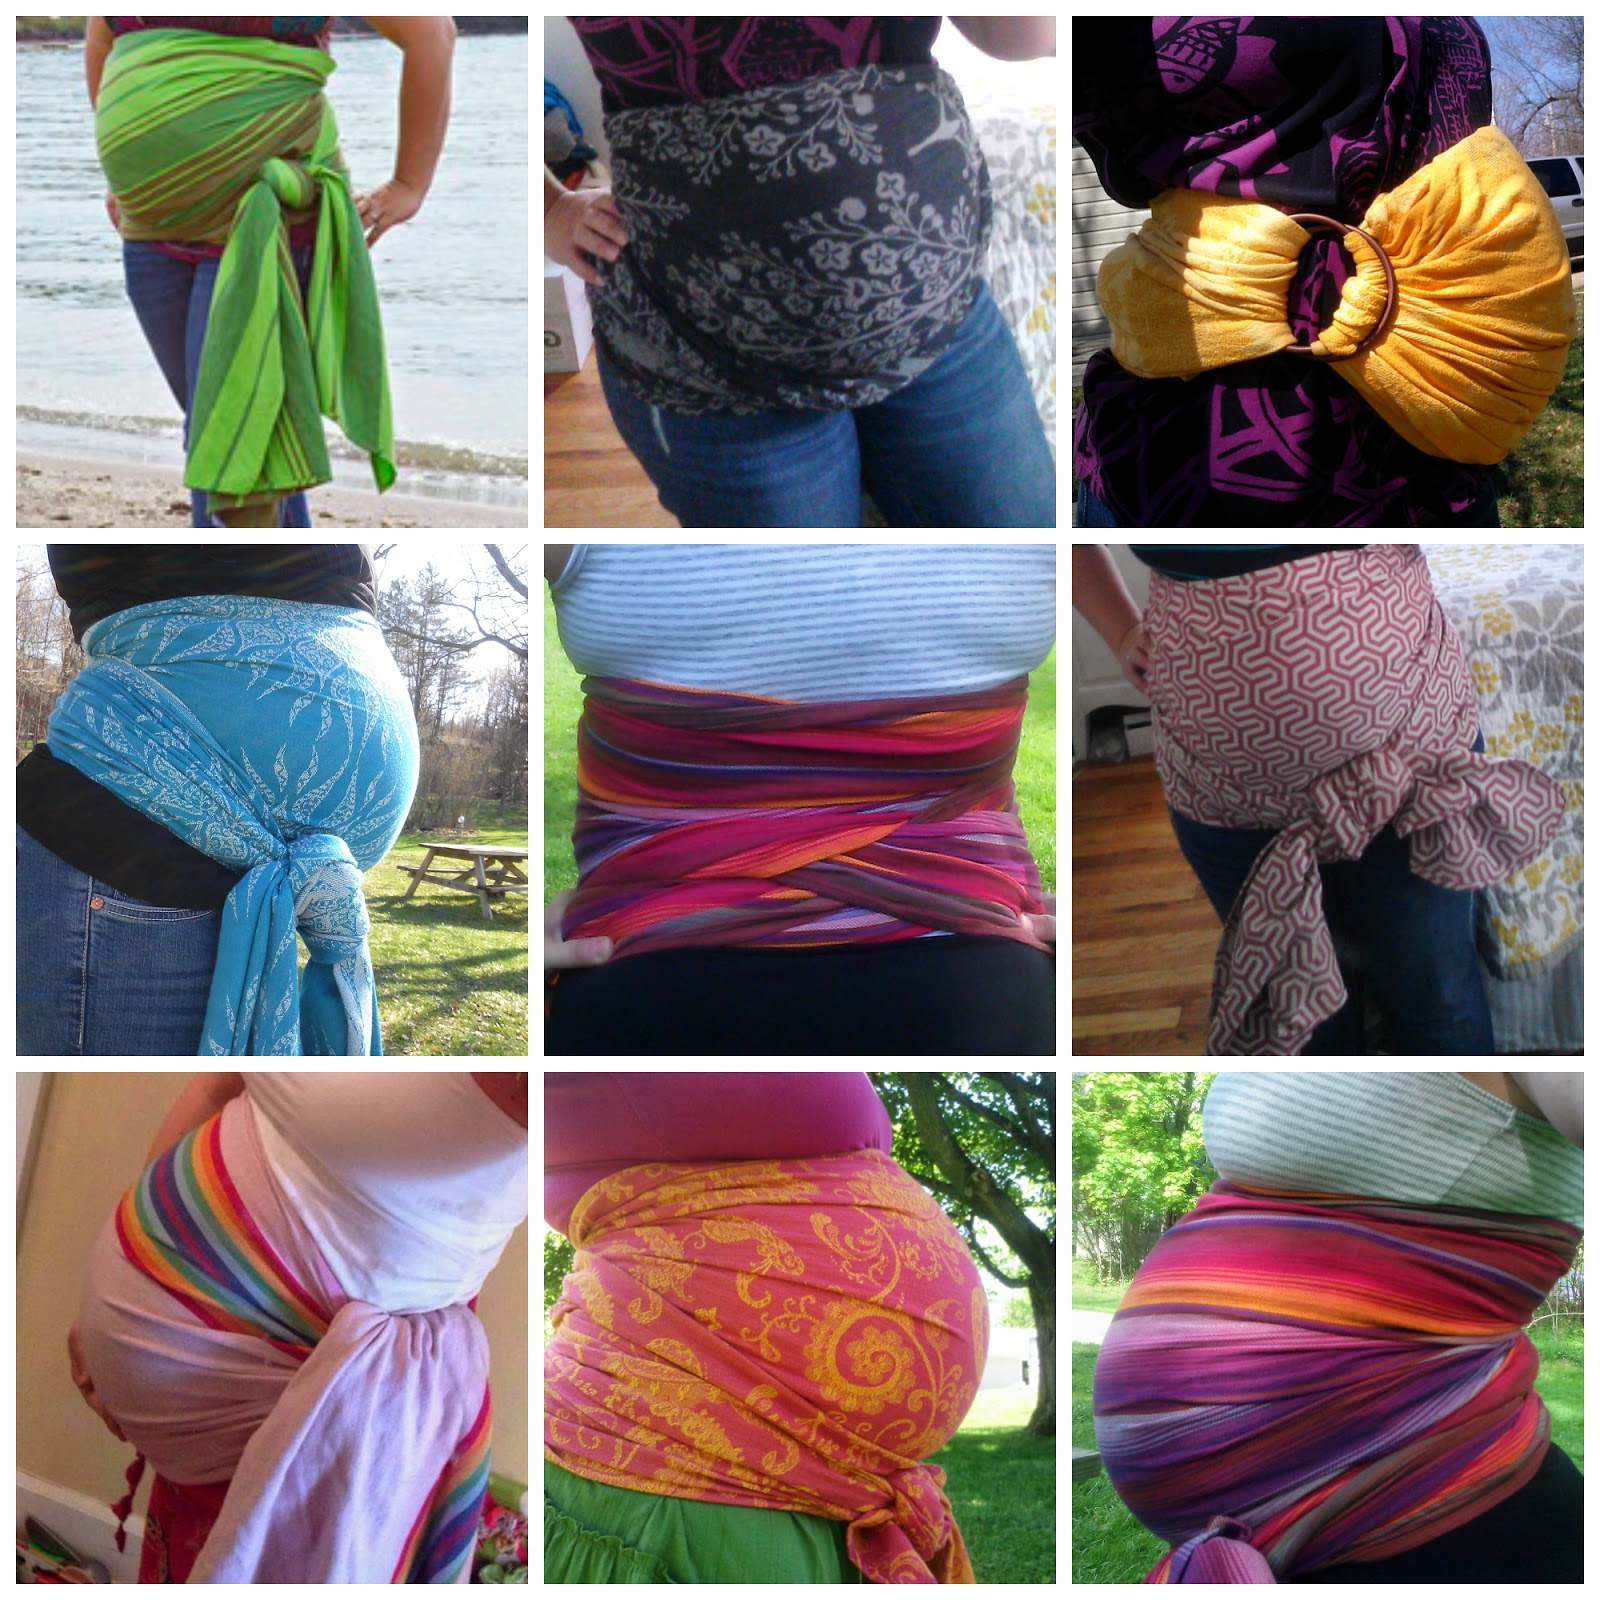 Babywearing International Of Cleveland: Belly Wrapping For